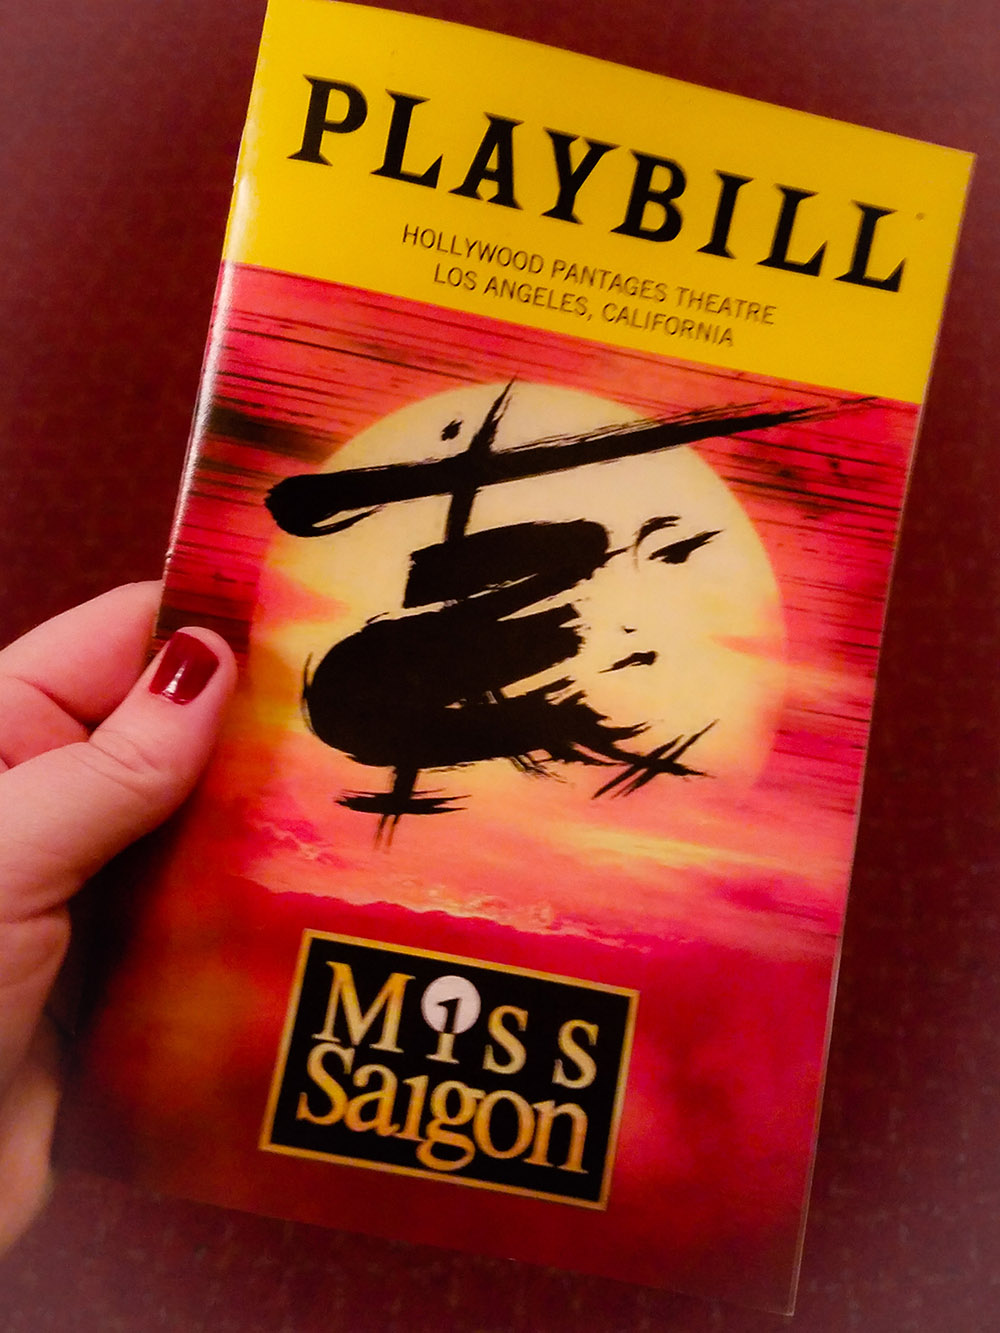 saigon-playbill.jpg